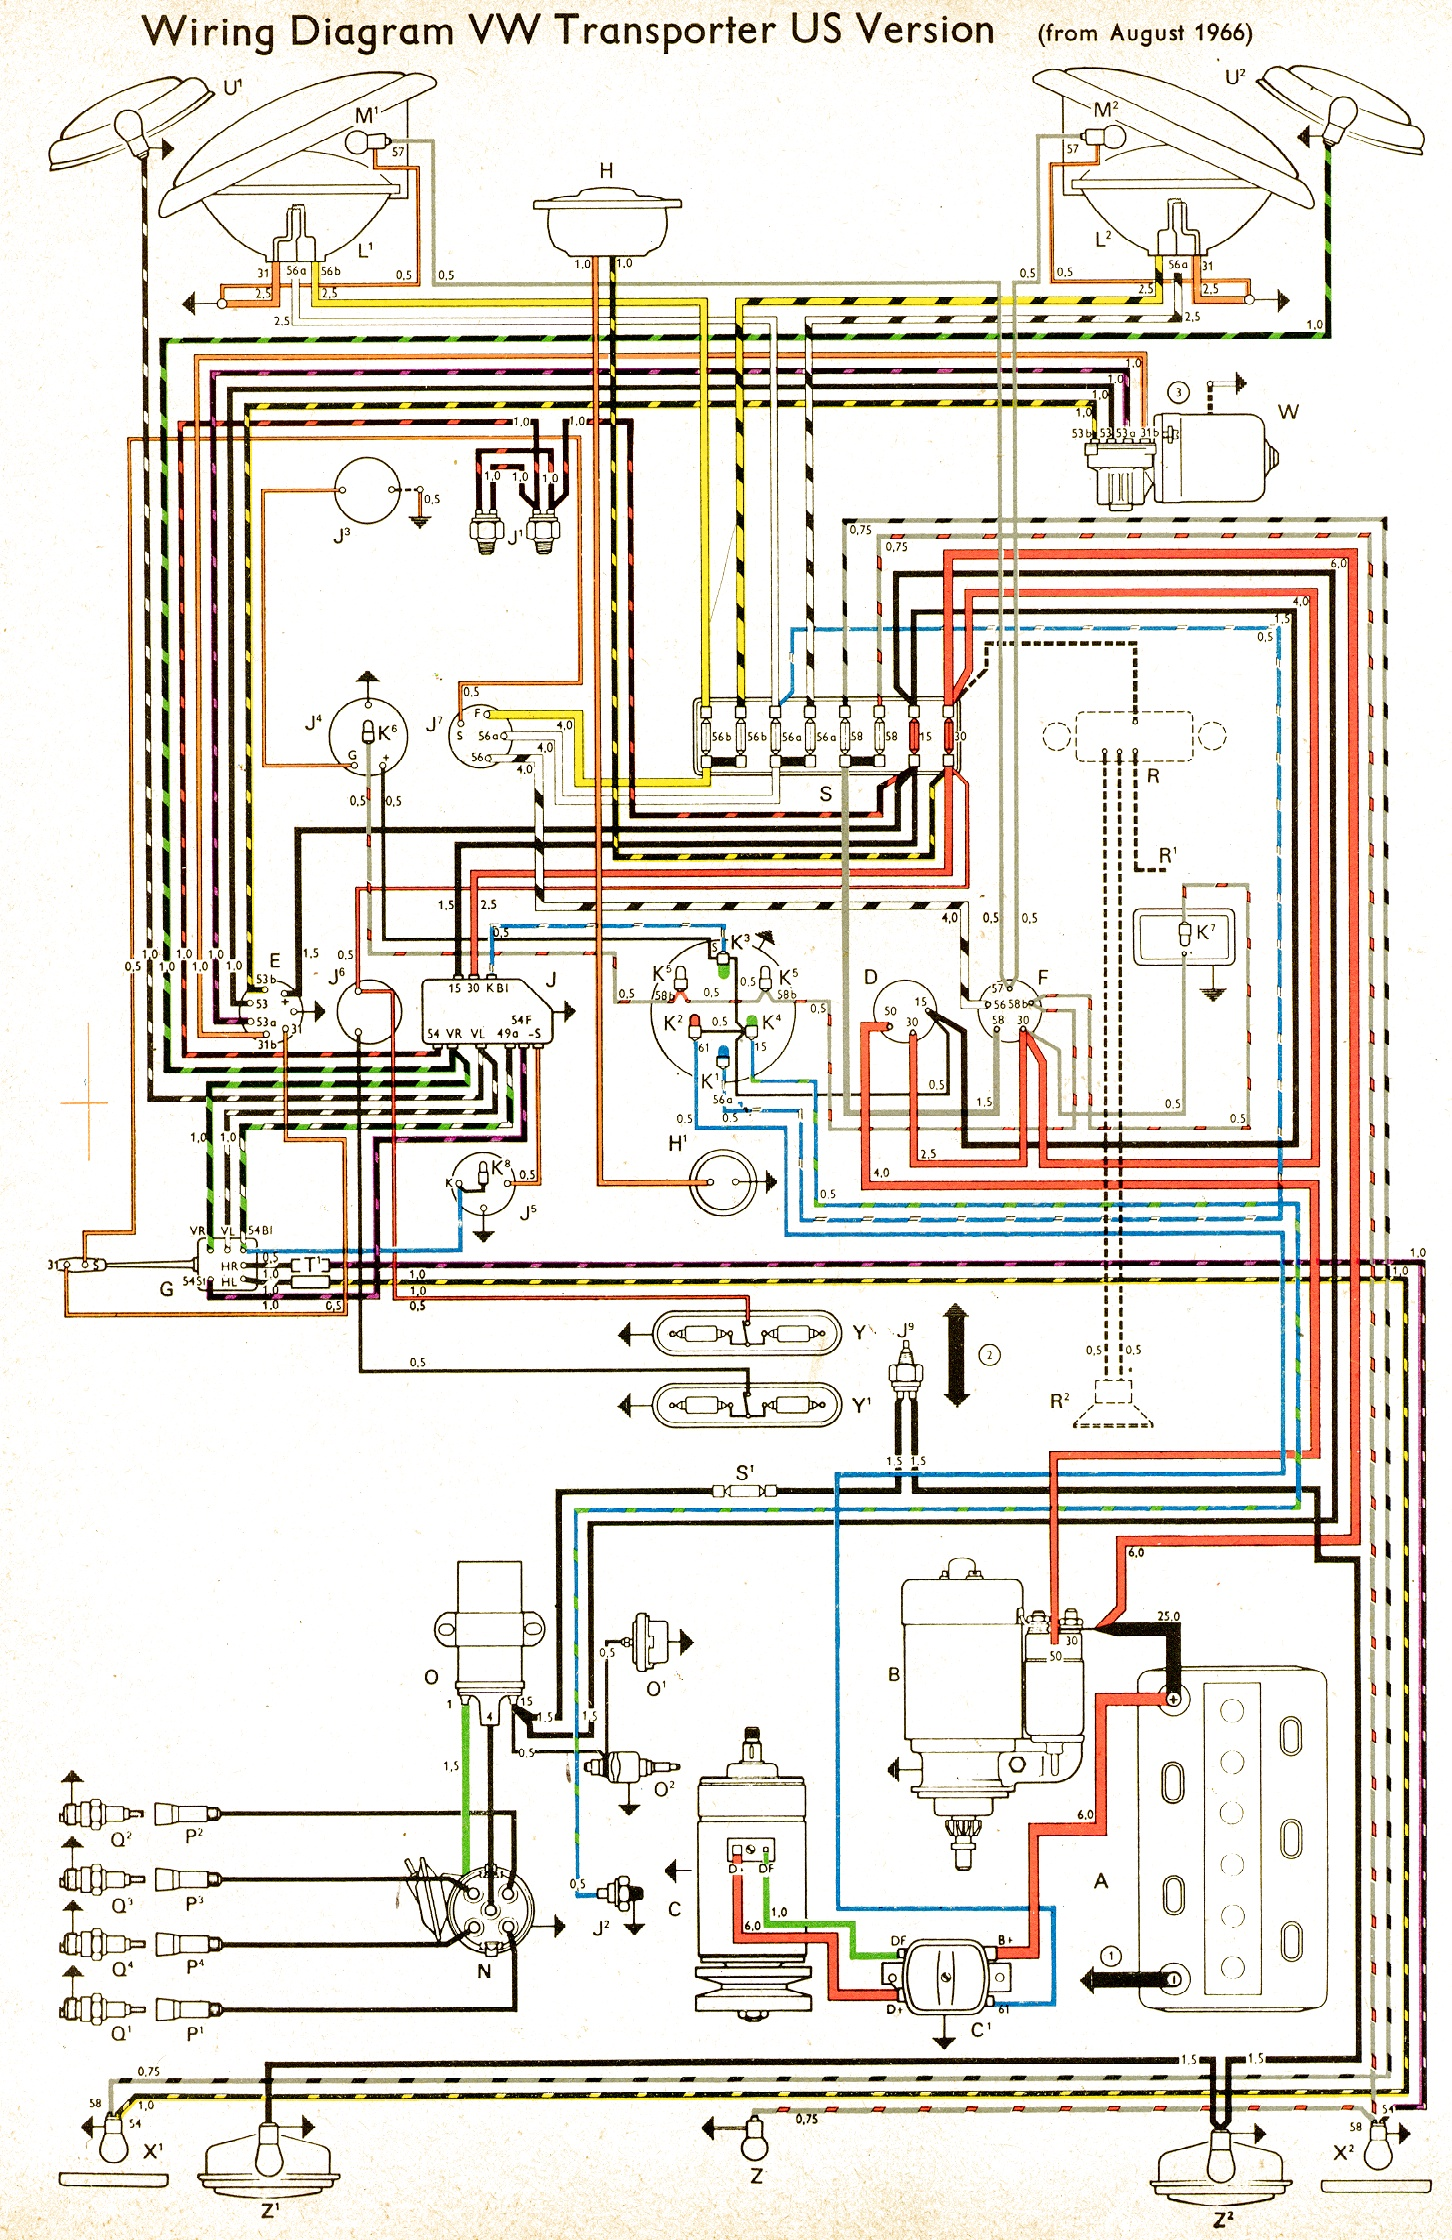 Vw Bus Wiring Layout Just Another Diagram Blog Motorcycle Headlight Wire 5 Vintagebus Com And Other Diagrams Rh Dune Buggy